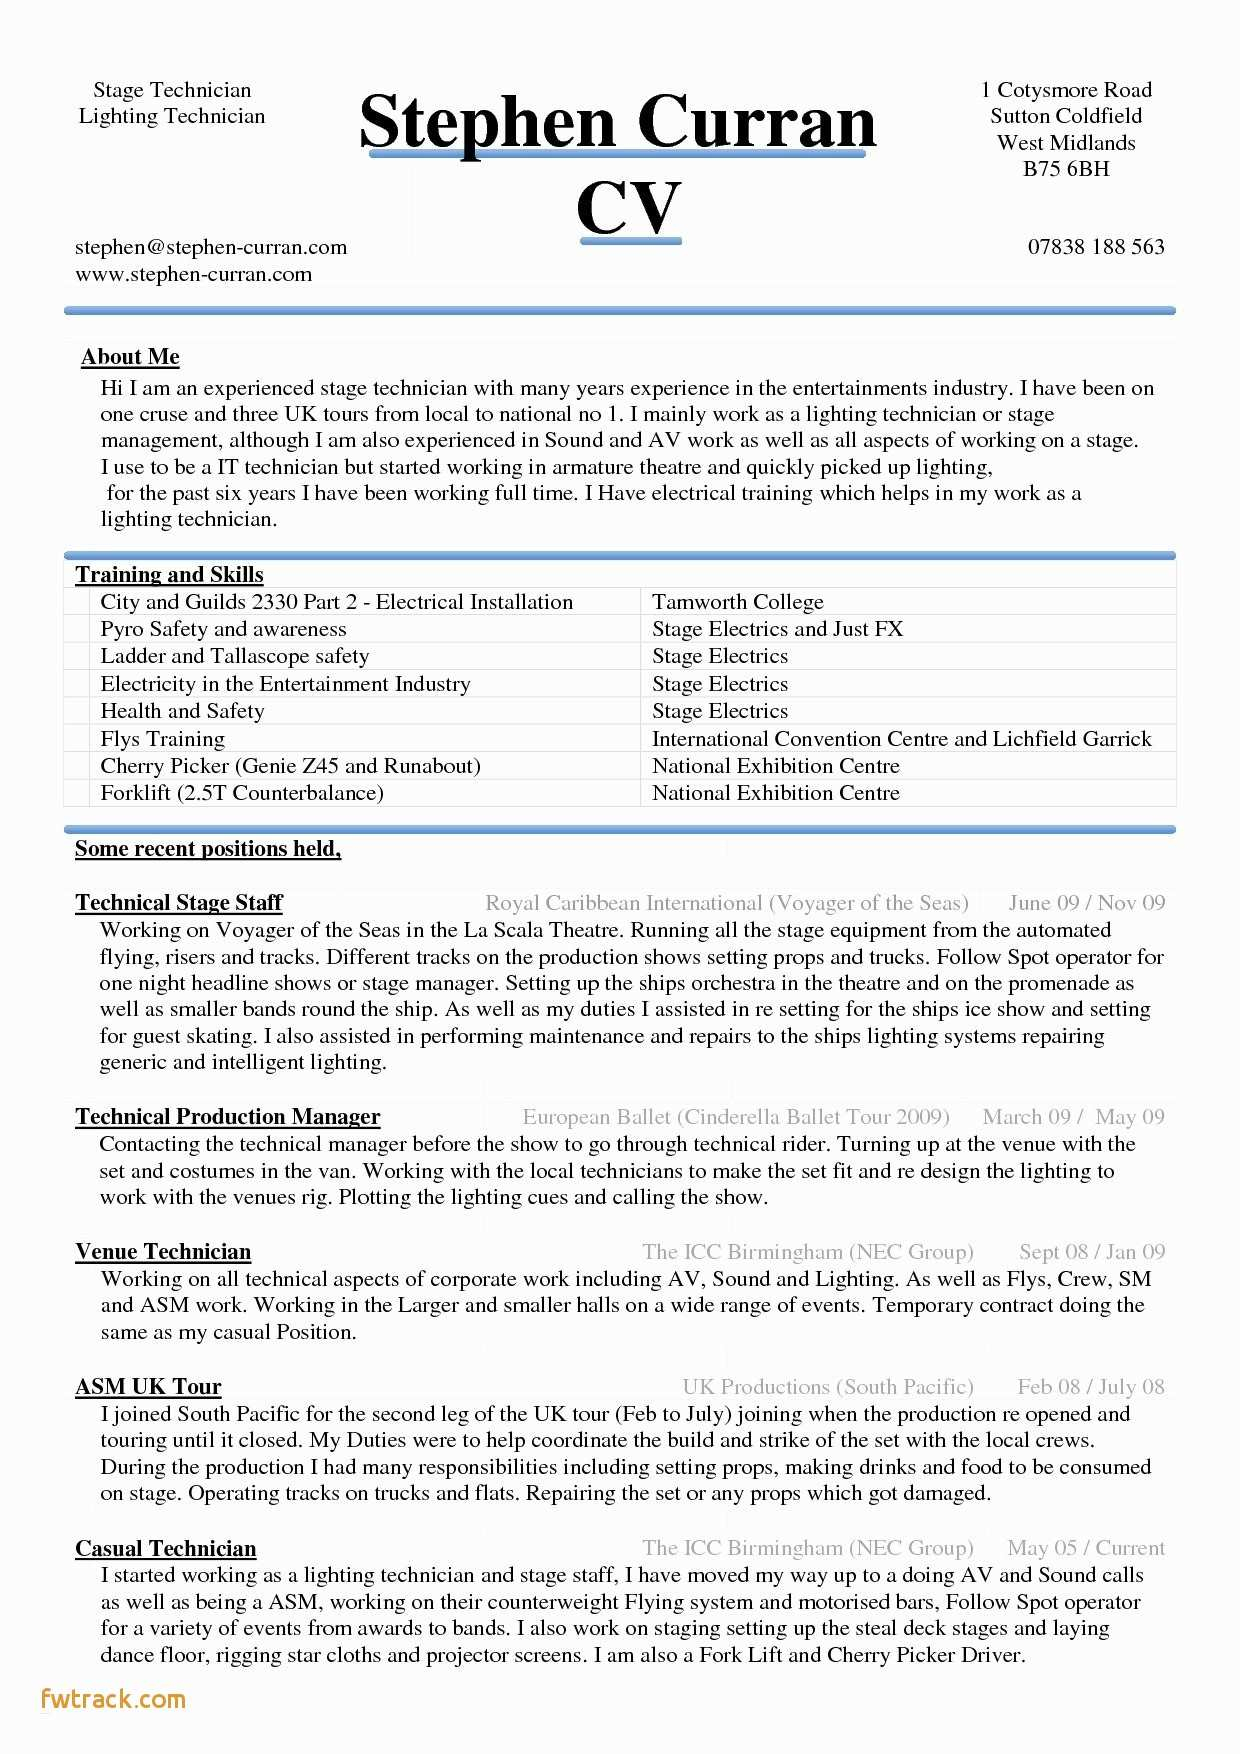 Ballet Resume Template - Resume Templates for Pages Fwtrack Fwtrack